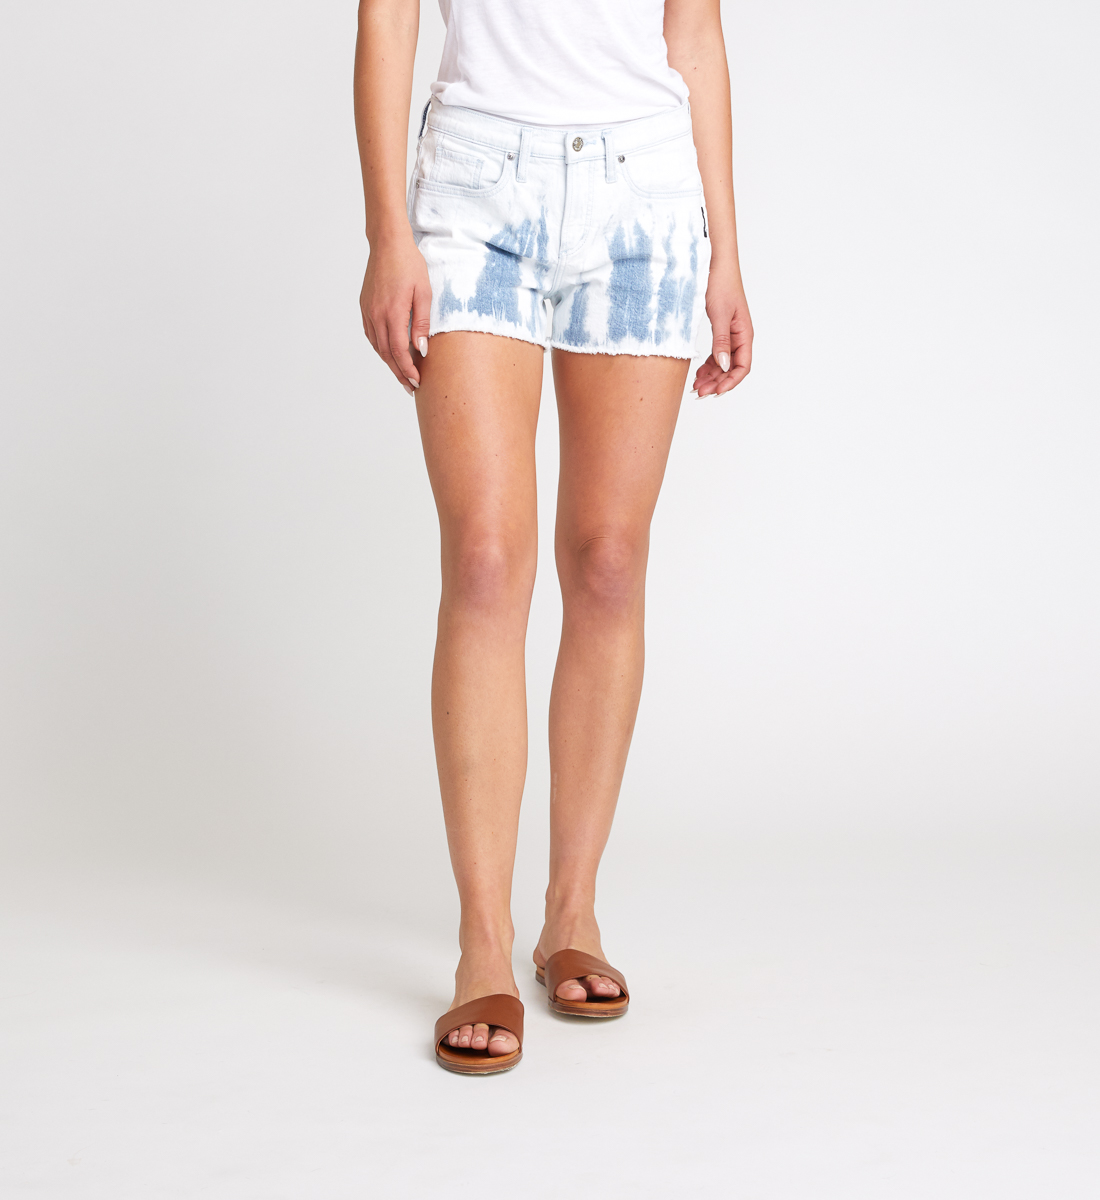 Silver Jeans Not Your Boyfriend'S Shorts